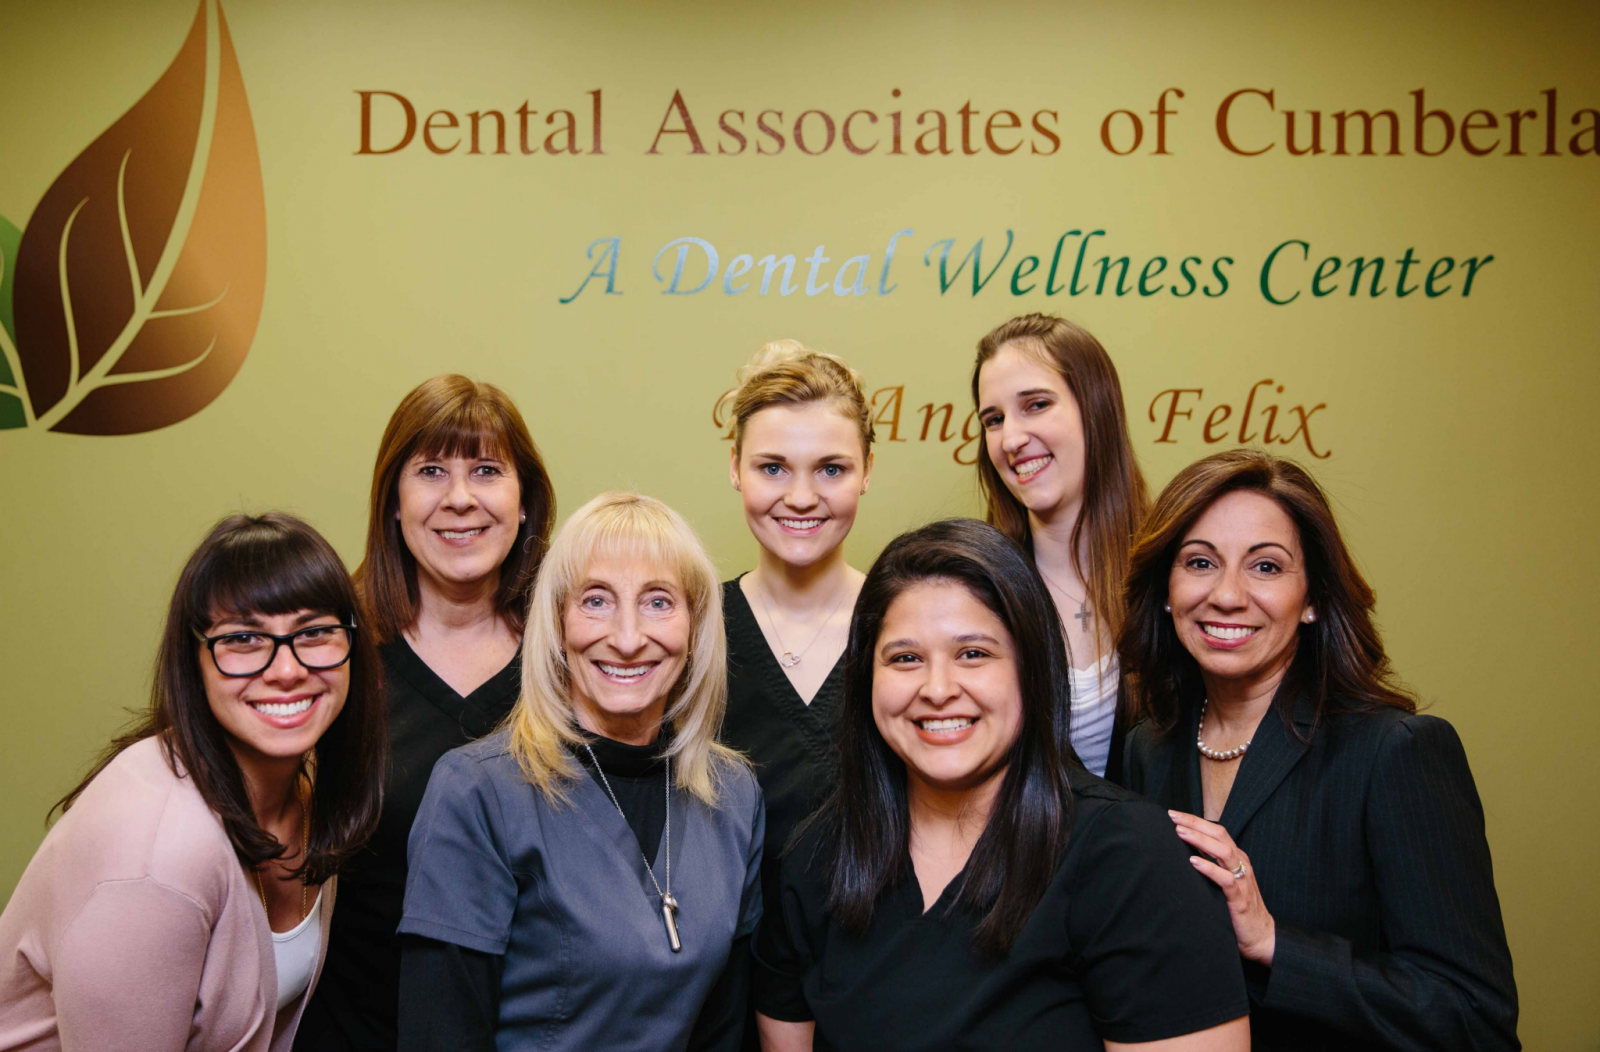 Dental Associates of Cumberland